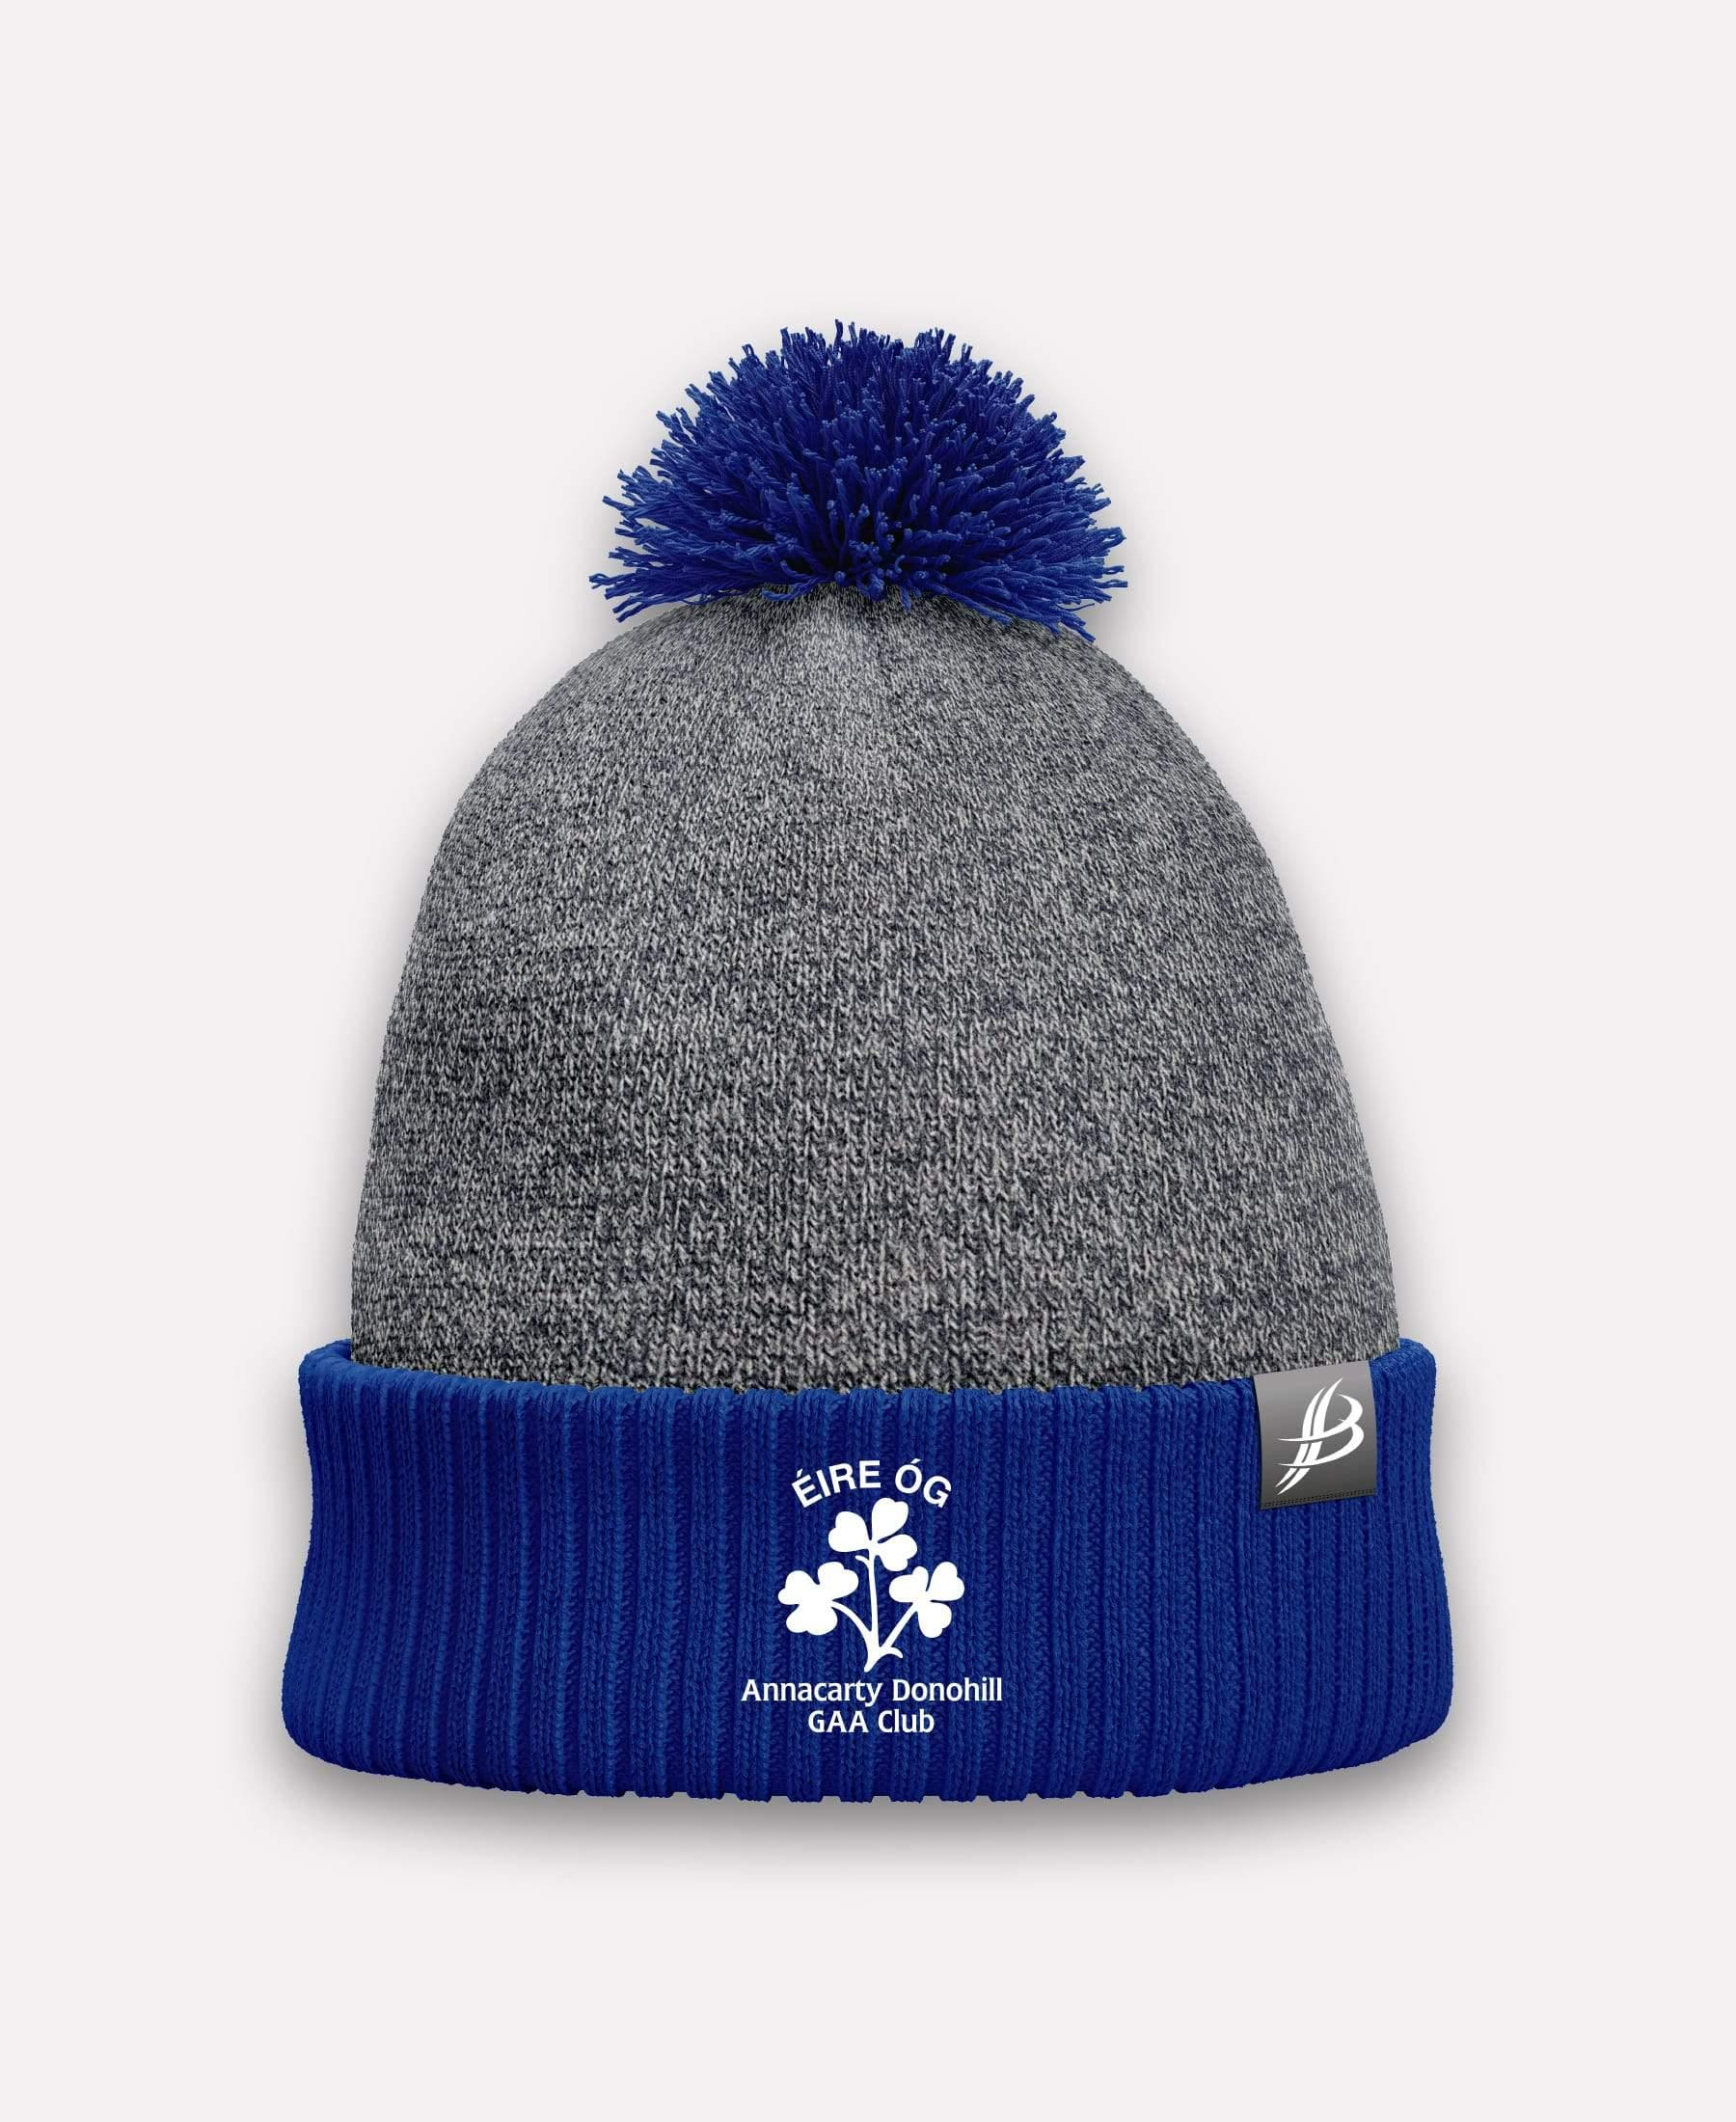 Eire Og Annacarty Donohill GAA Storm Bobble Hat - Bourke Sports Limited